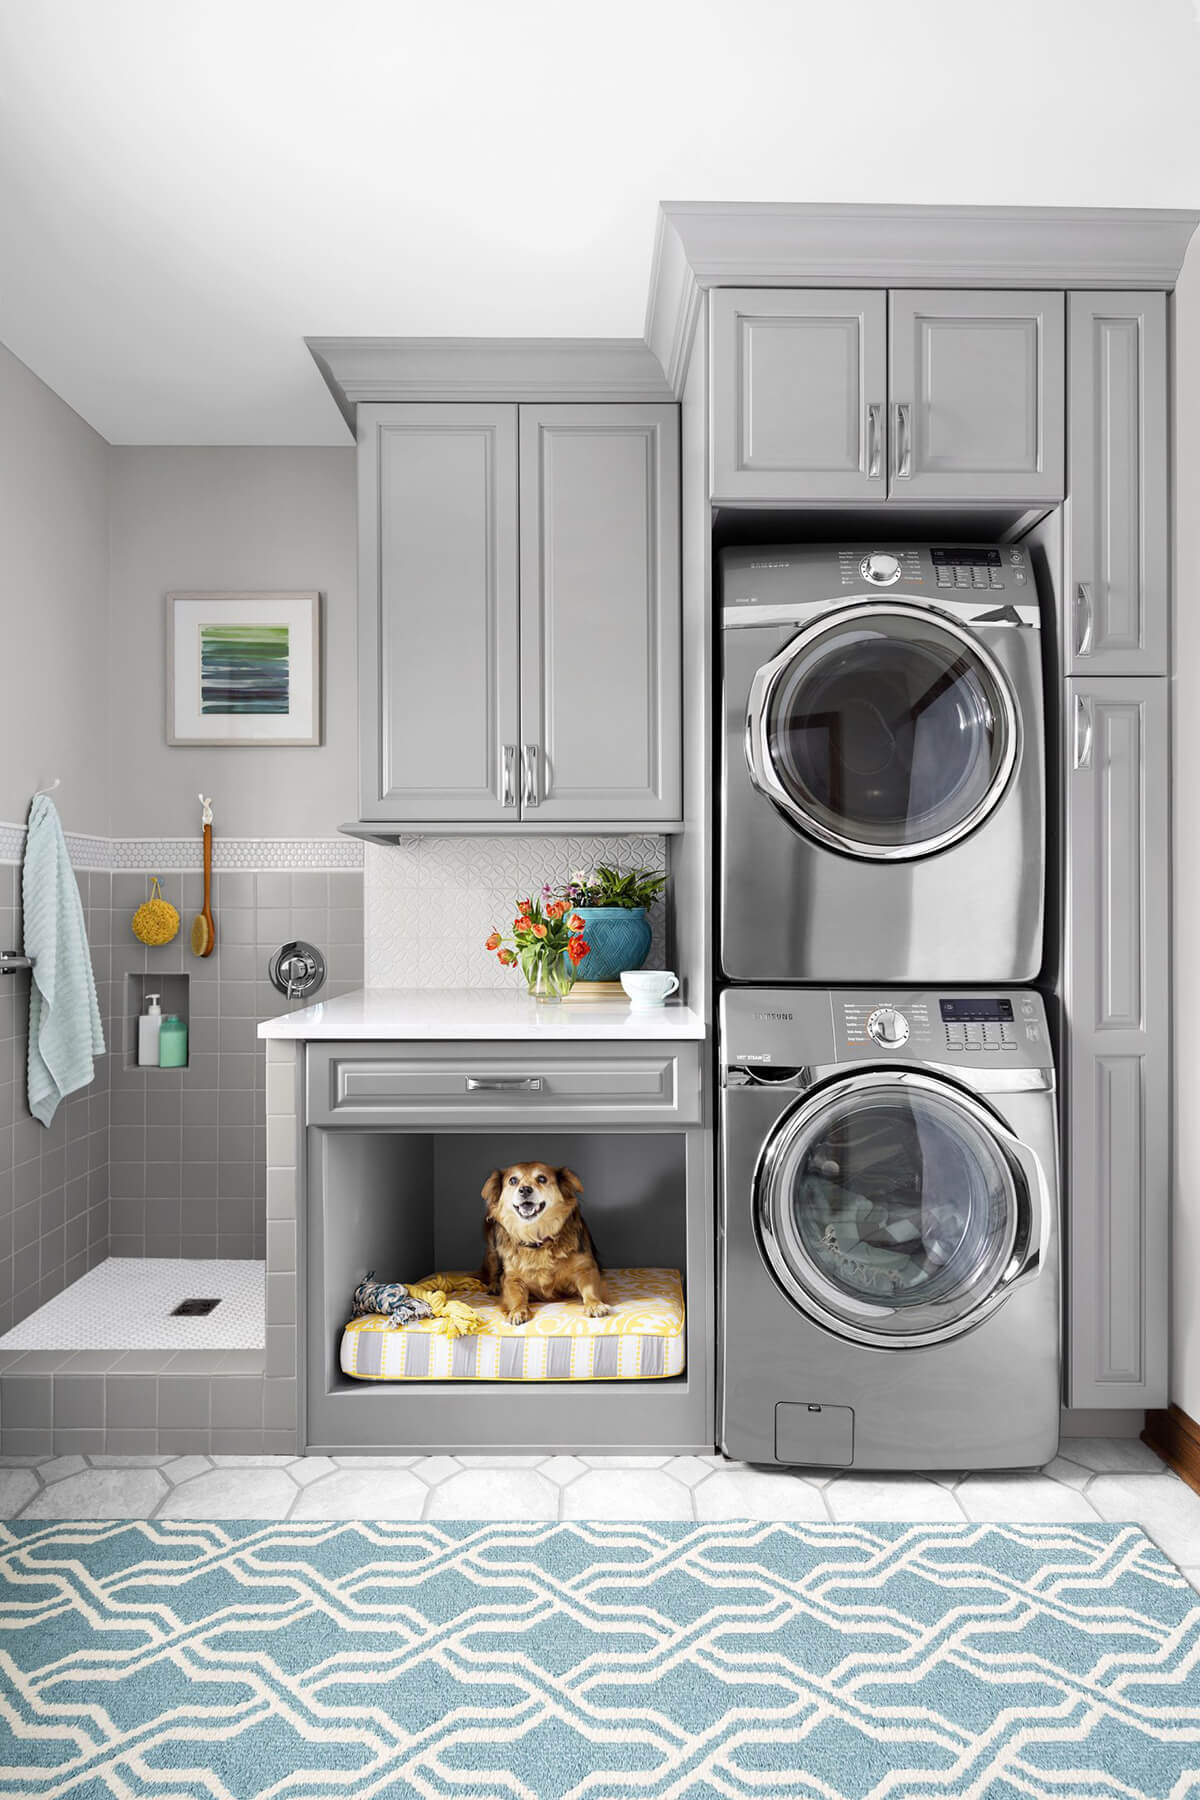 Best ideas about Laundry Room Images . Save or Pin 28 Best Small Laundry Room Design Ideas for 2019 Now.